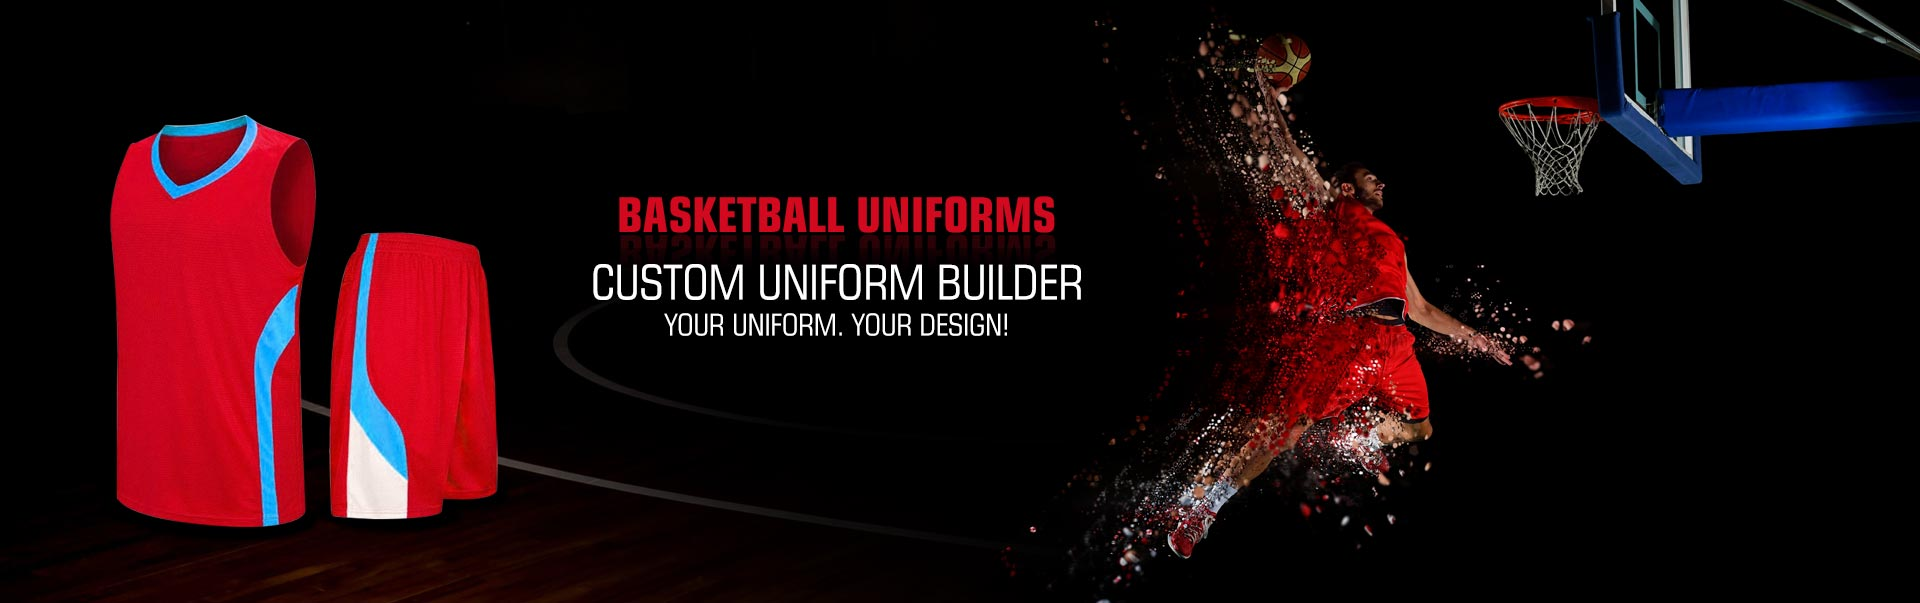 Basketball Uniforms Wholesaler, Suppliers in Little Rock